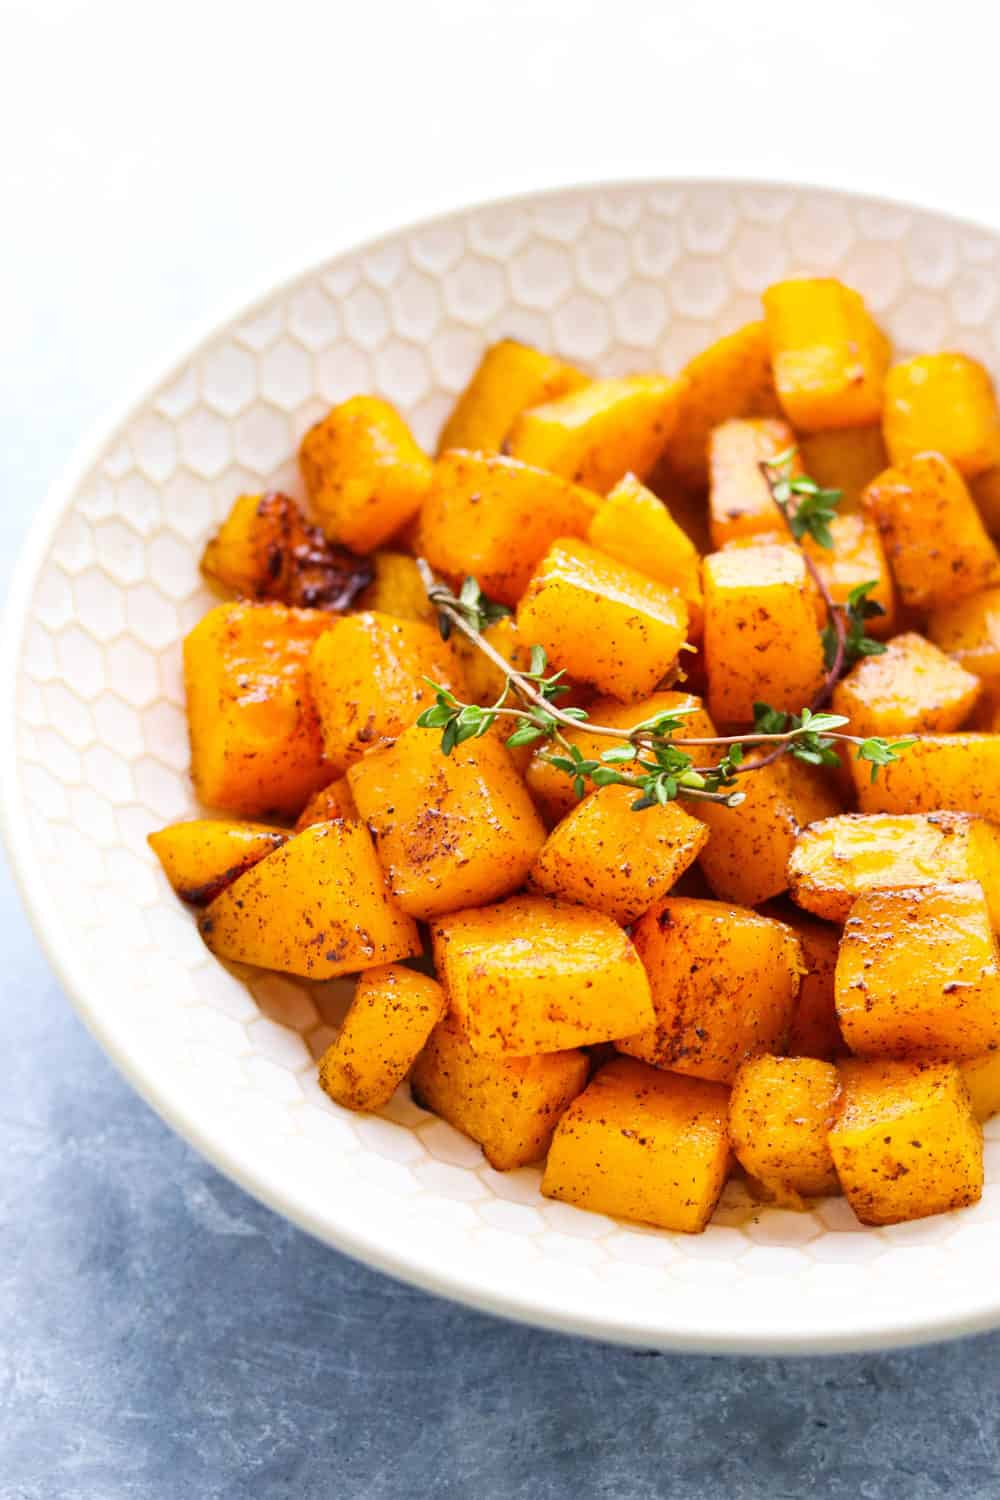 cubed squash in a round bowl with cinnamon on it